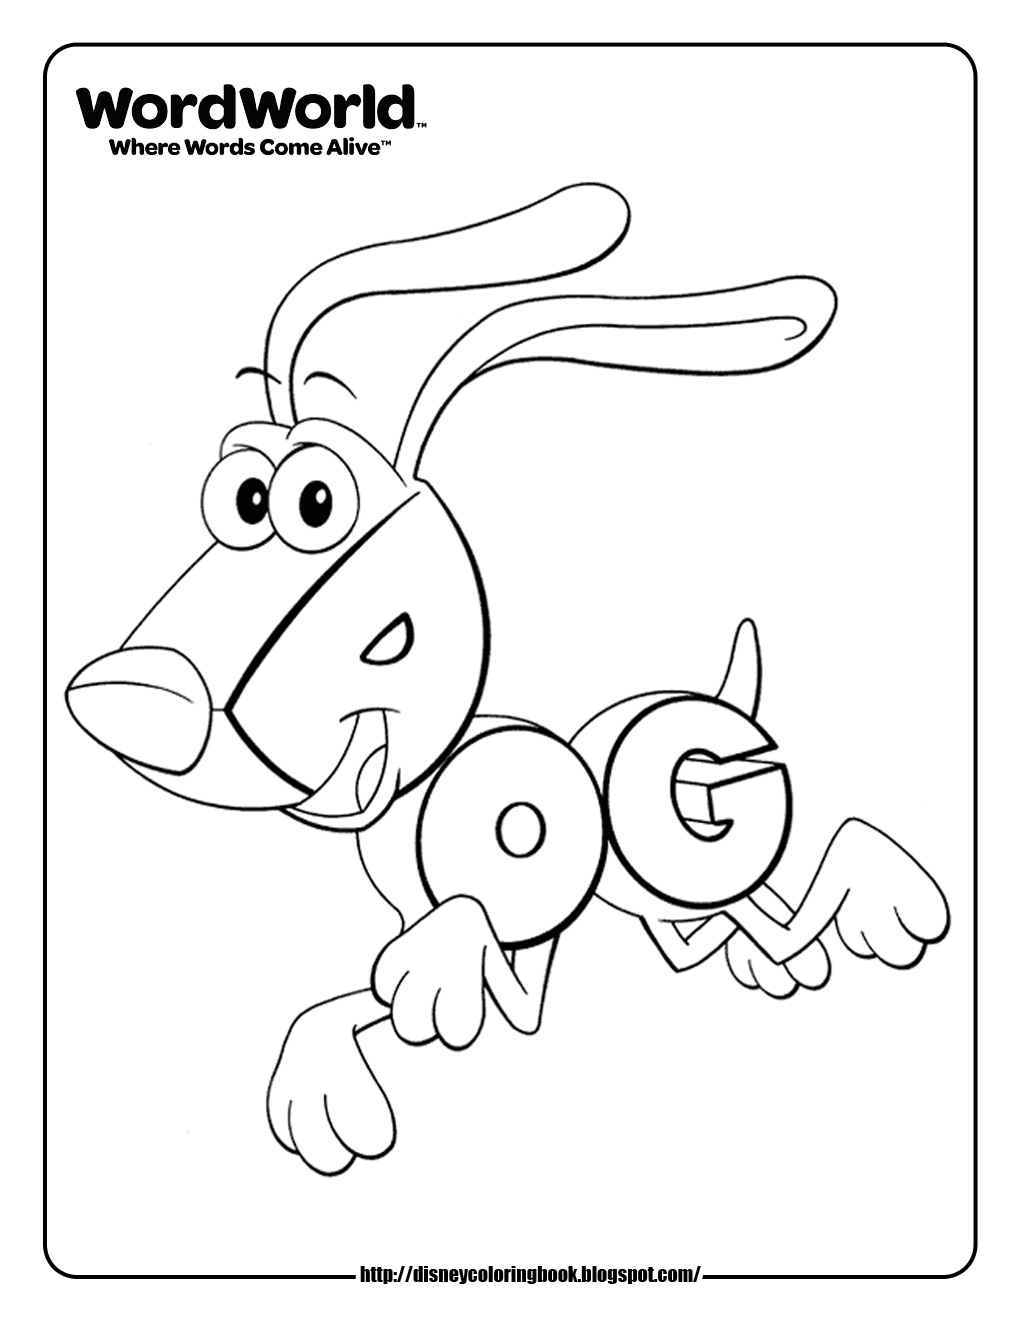 Disney Coloring Pages and Sheets for Kids: WordWorld 1